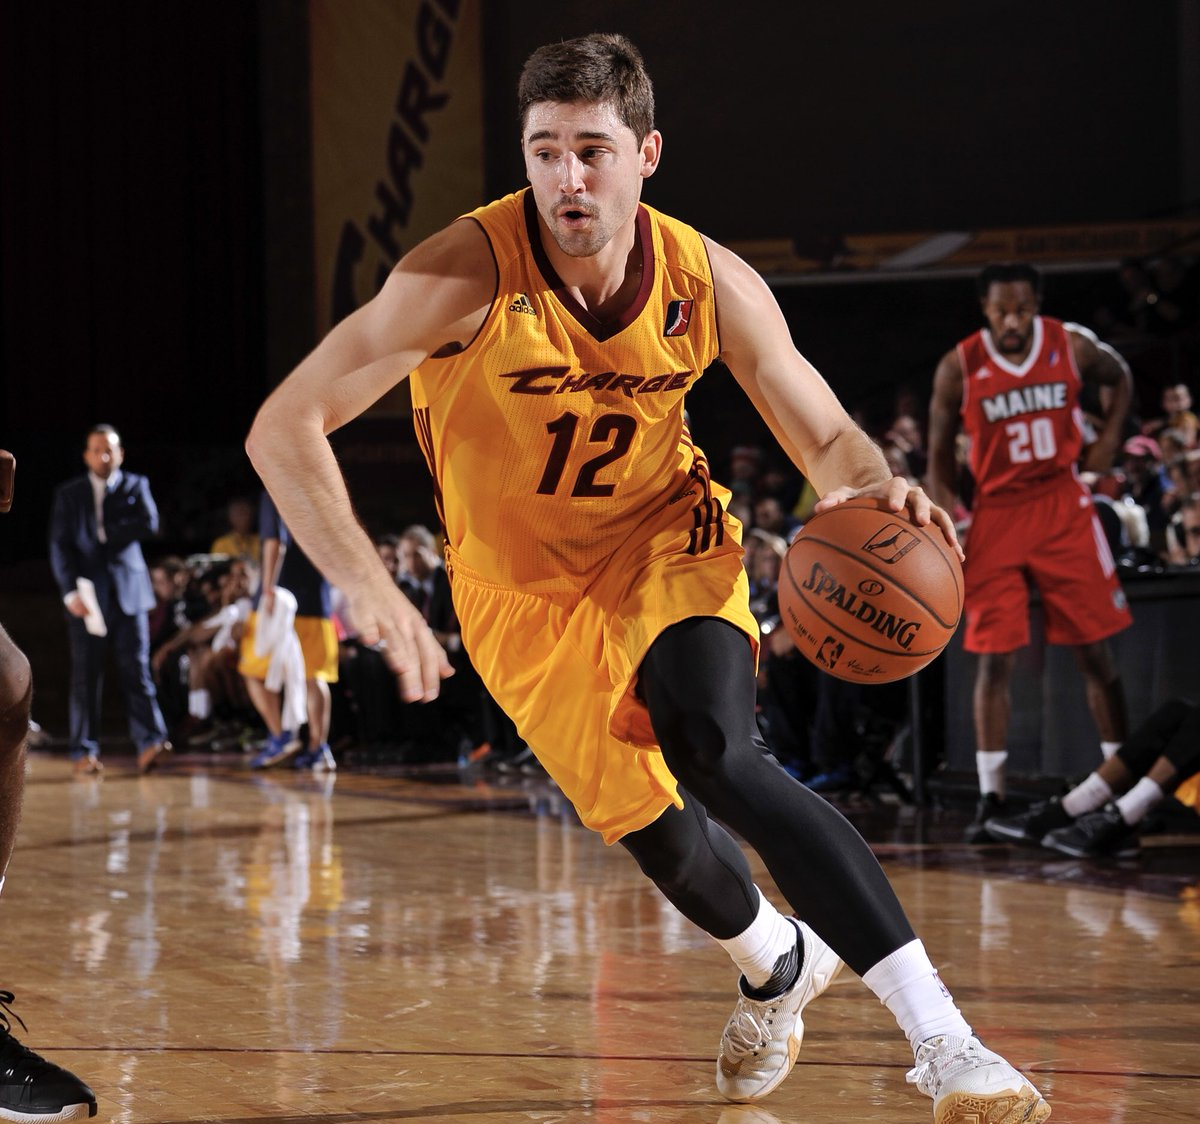 Joey Hoops was drafted 33rd by the @cavs in 2014 and spent his time in Canton honing his 3 point shot 🎯 https://t.co/zosQwUHJz7